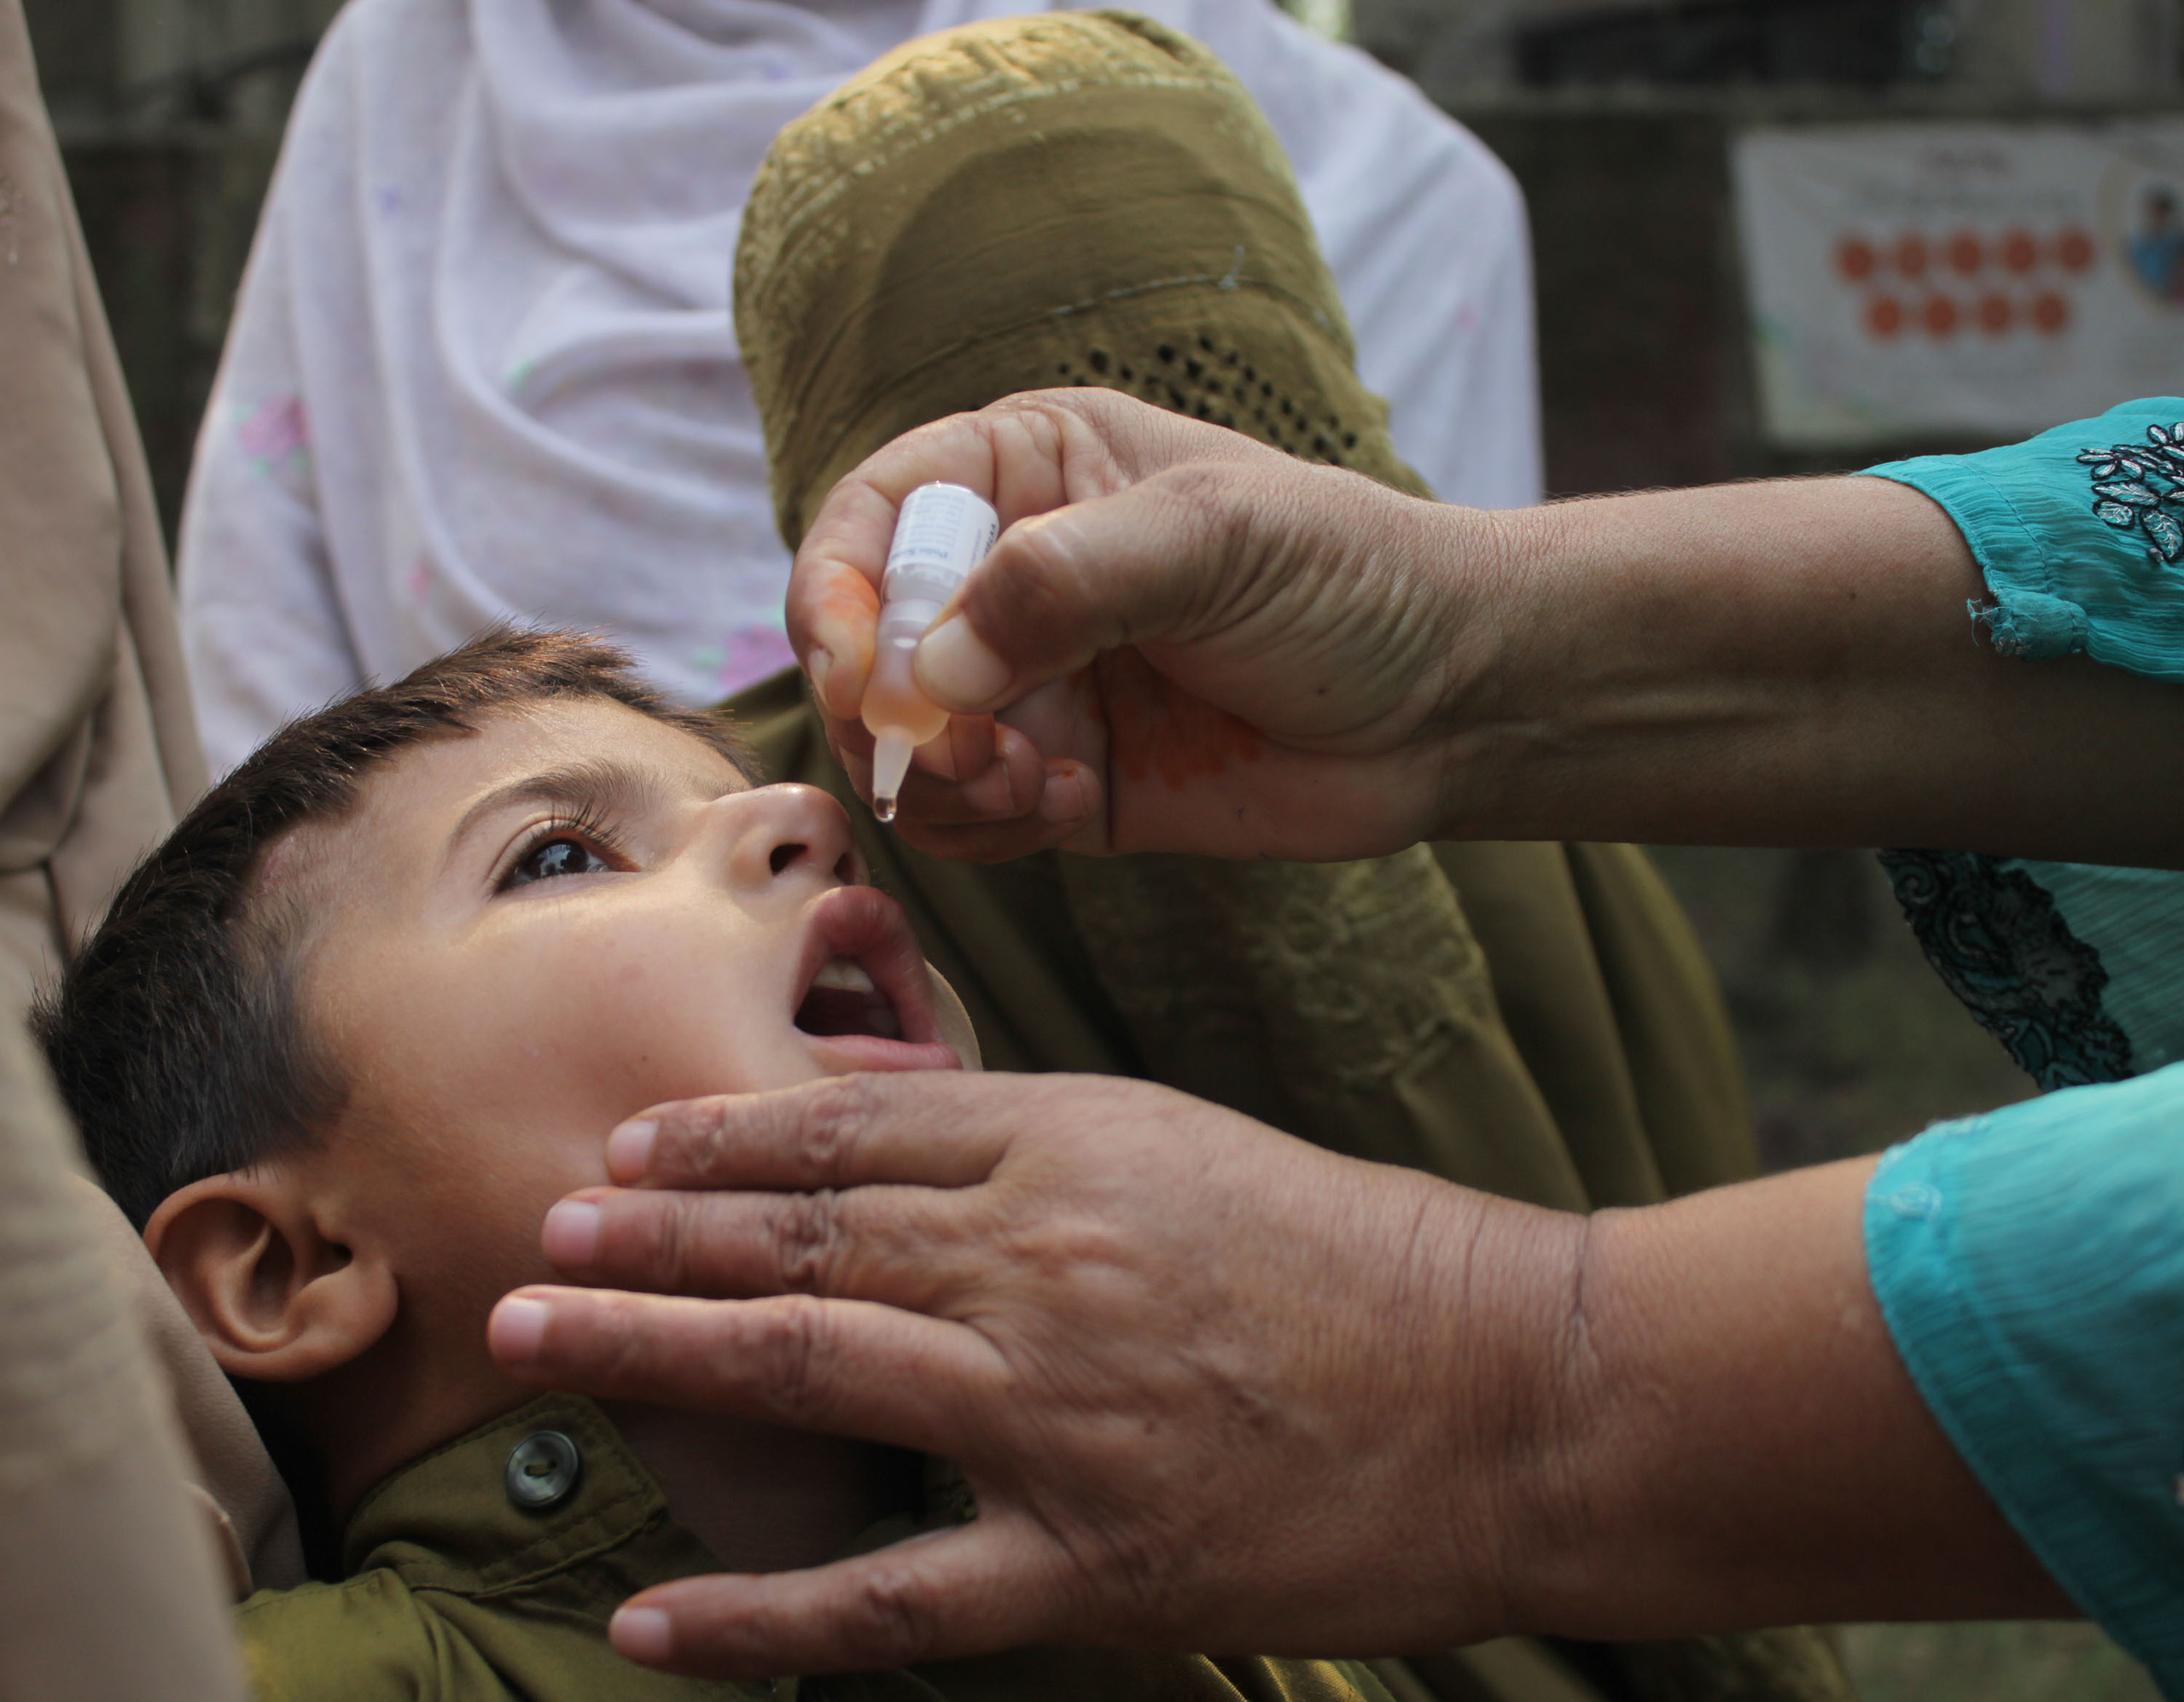 All good now: A child in Lahore, Pakistan receives the polio vaccine in 2014